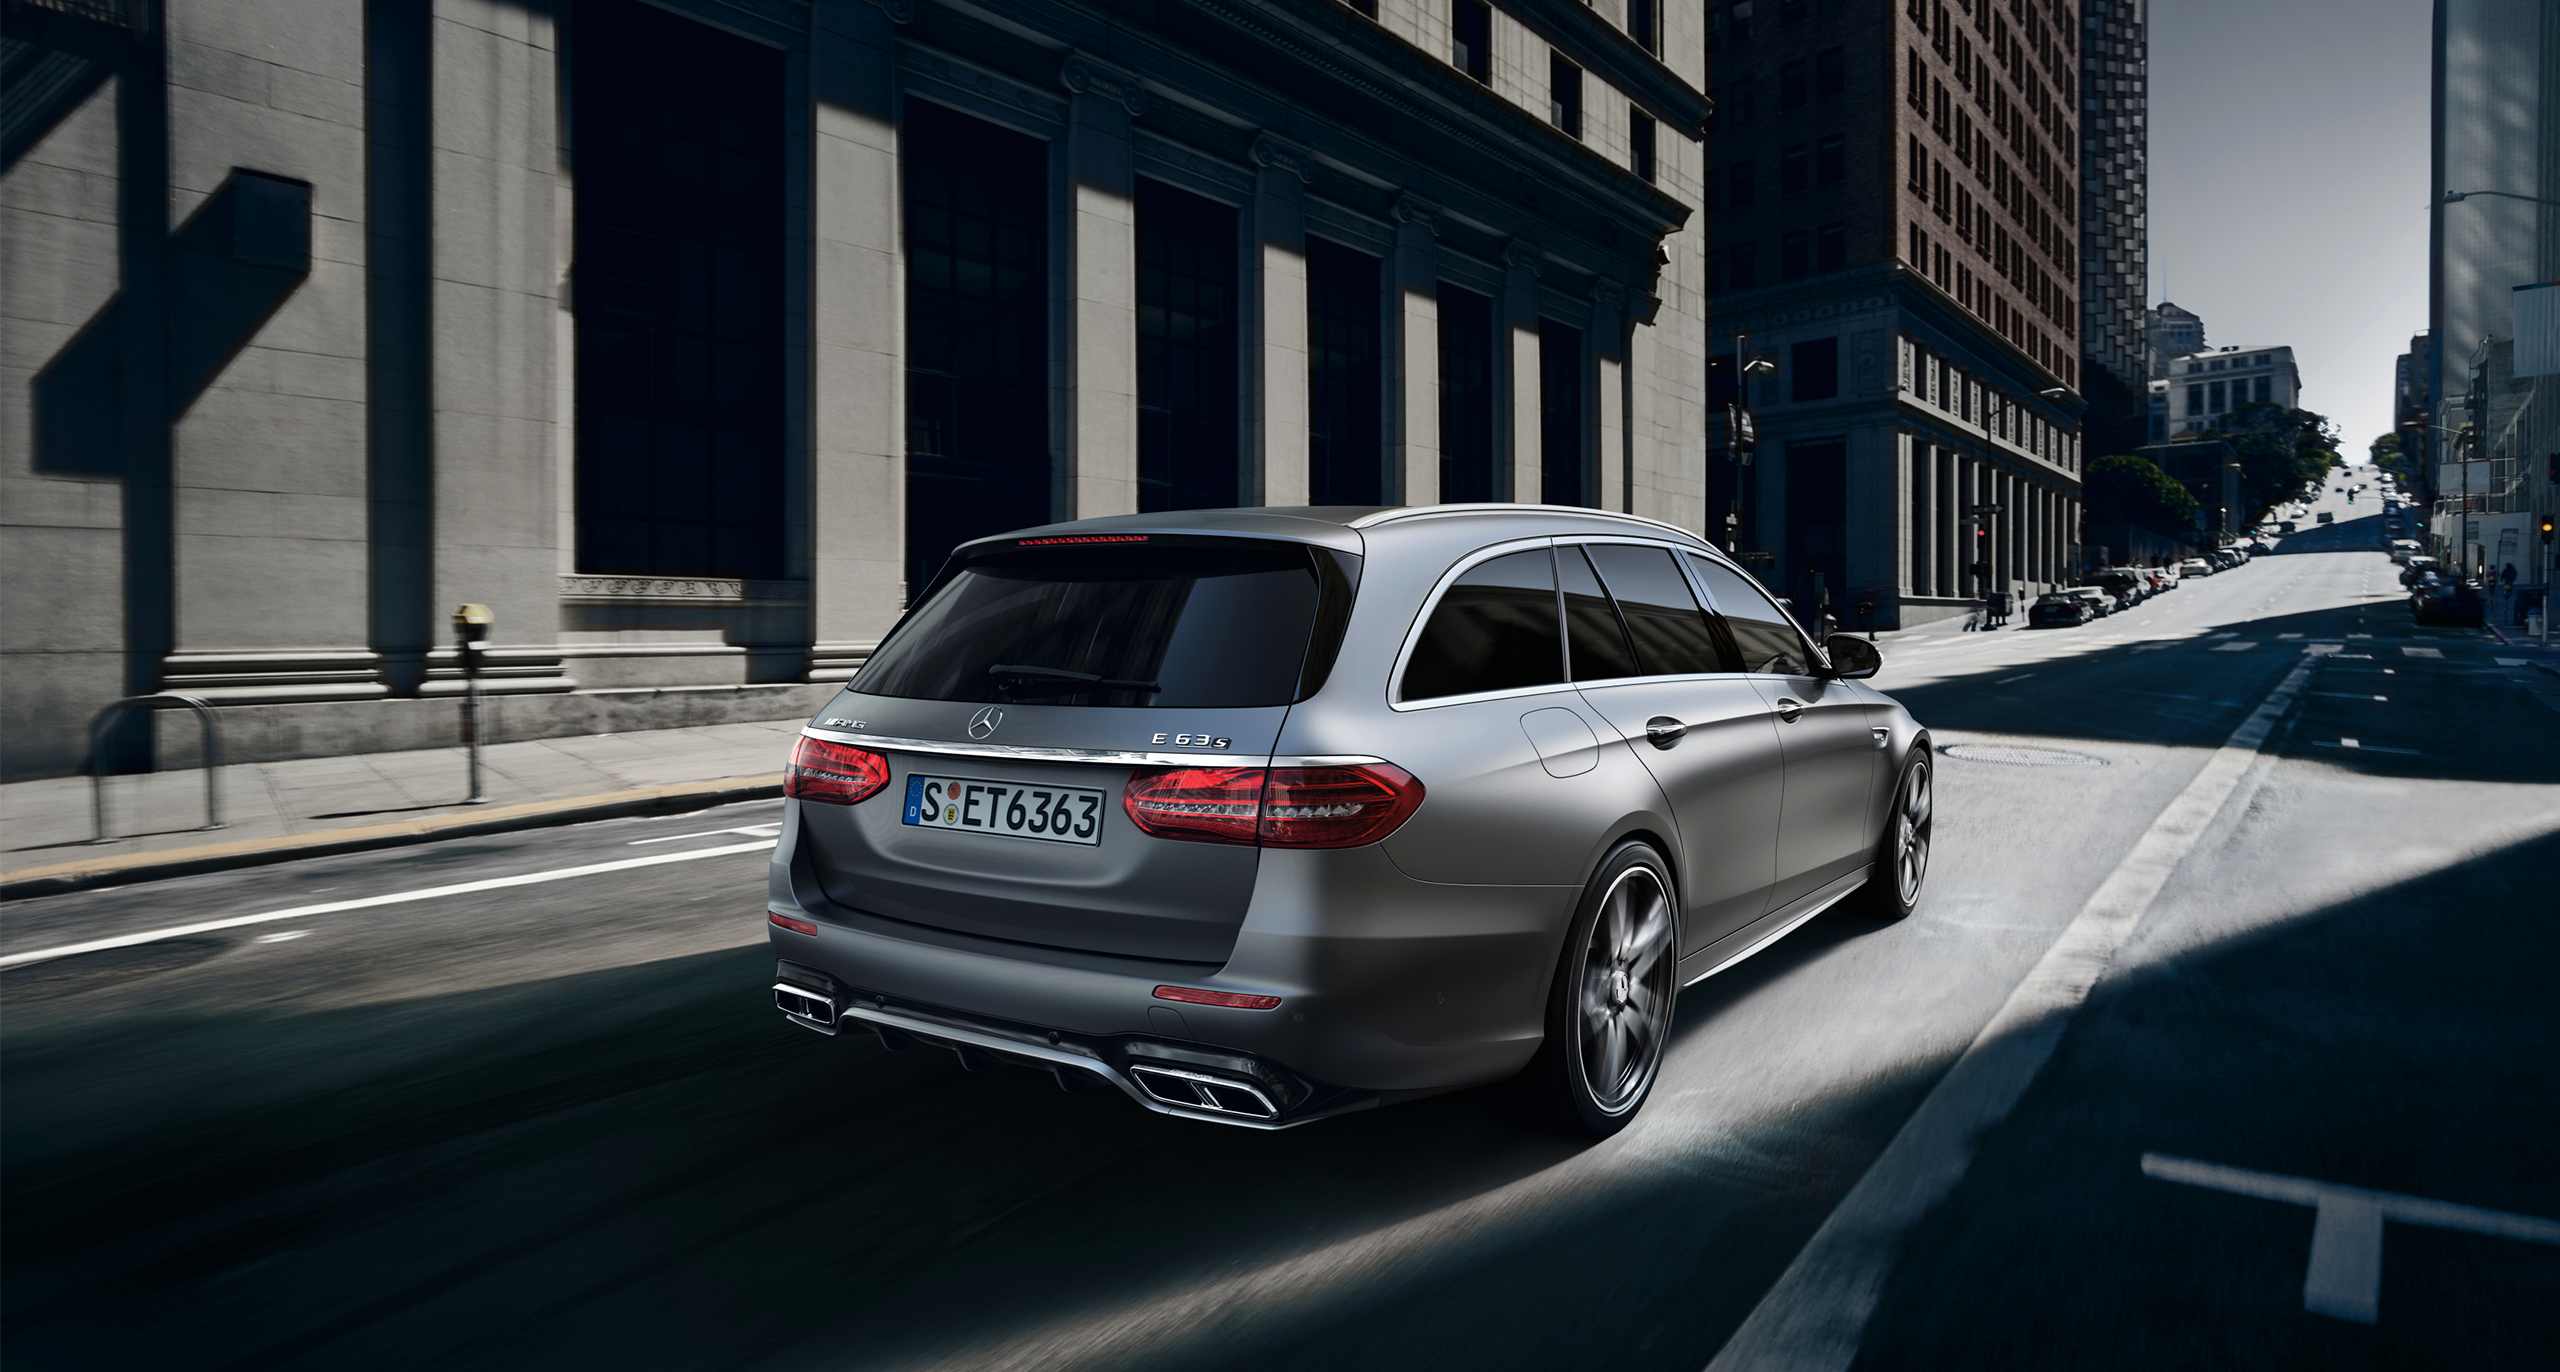 00-mercedes-benz-vehicles-e-63-s-4matic-estate-s-213-2560x1372-2-2